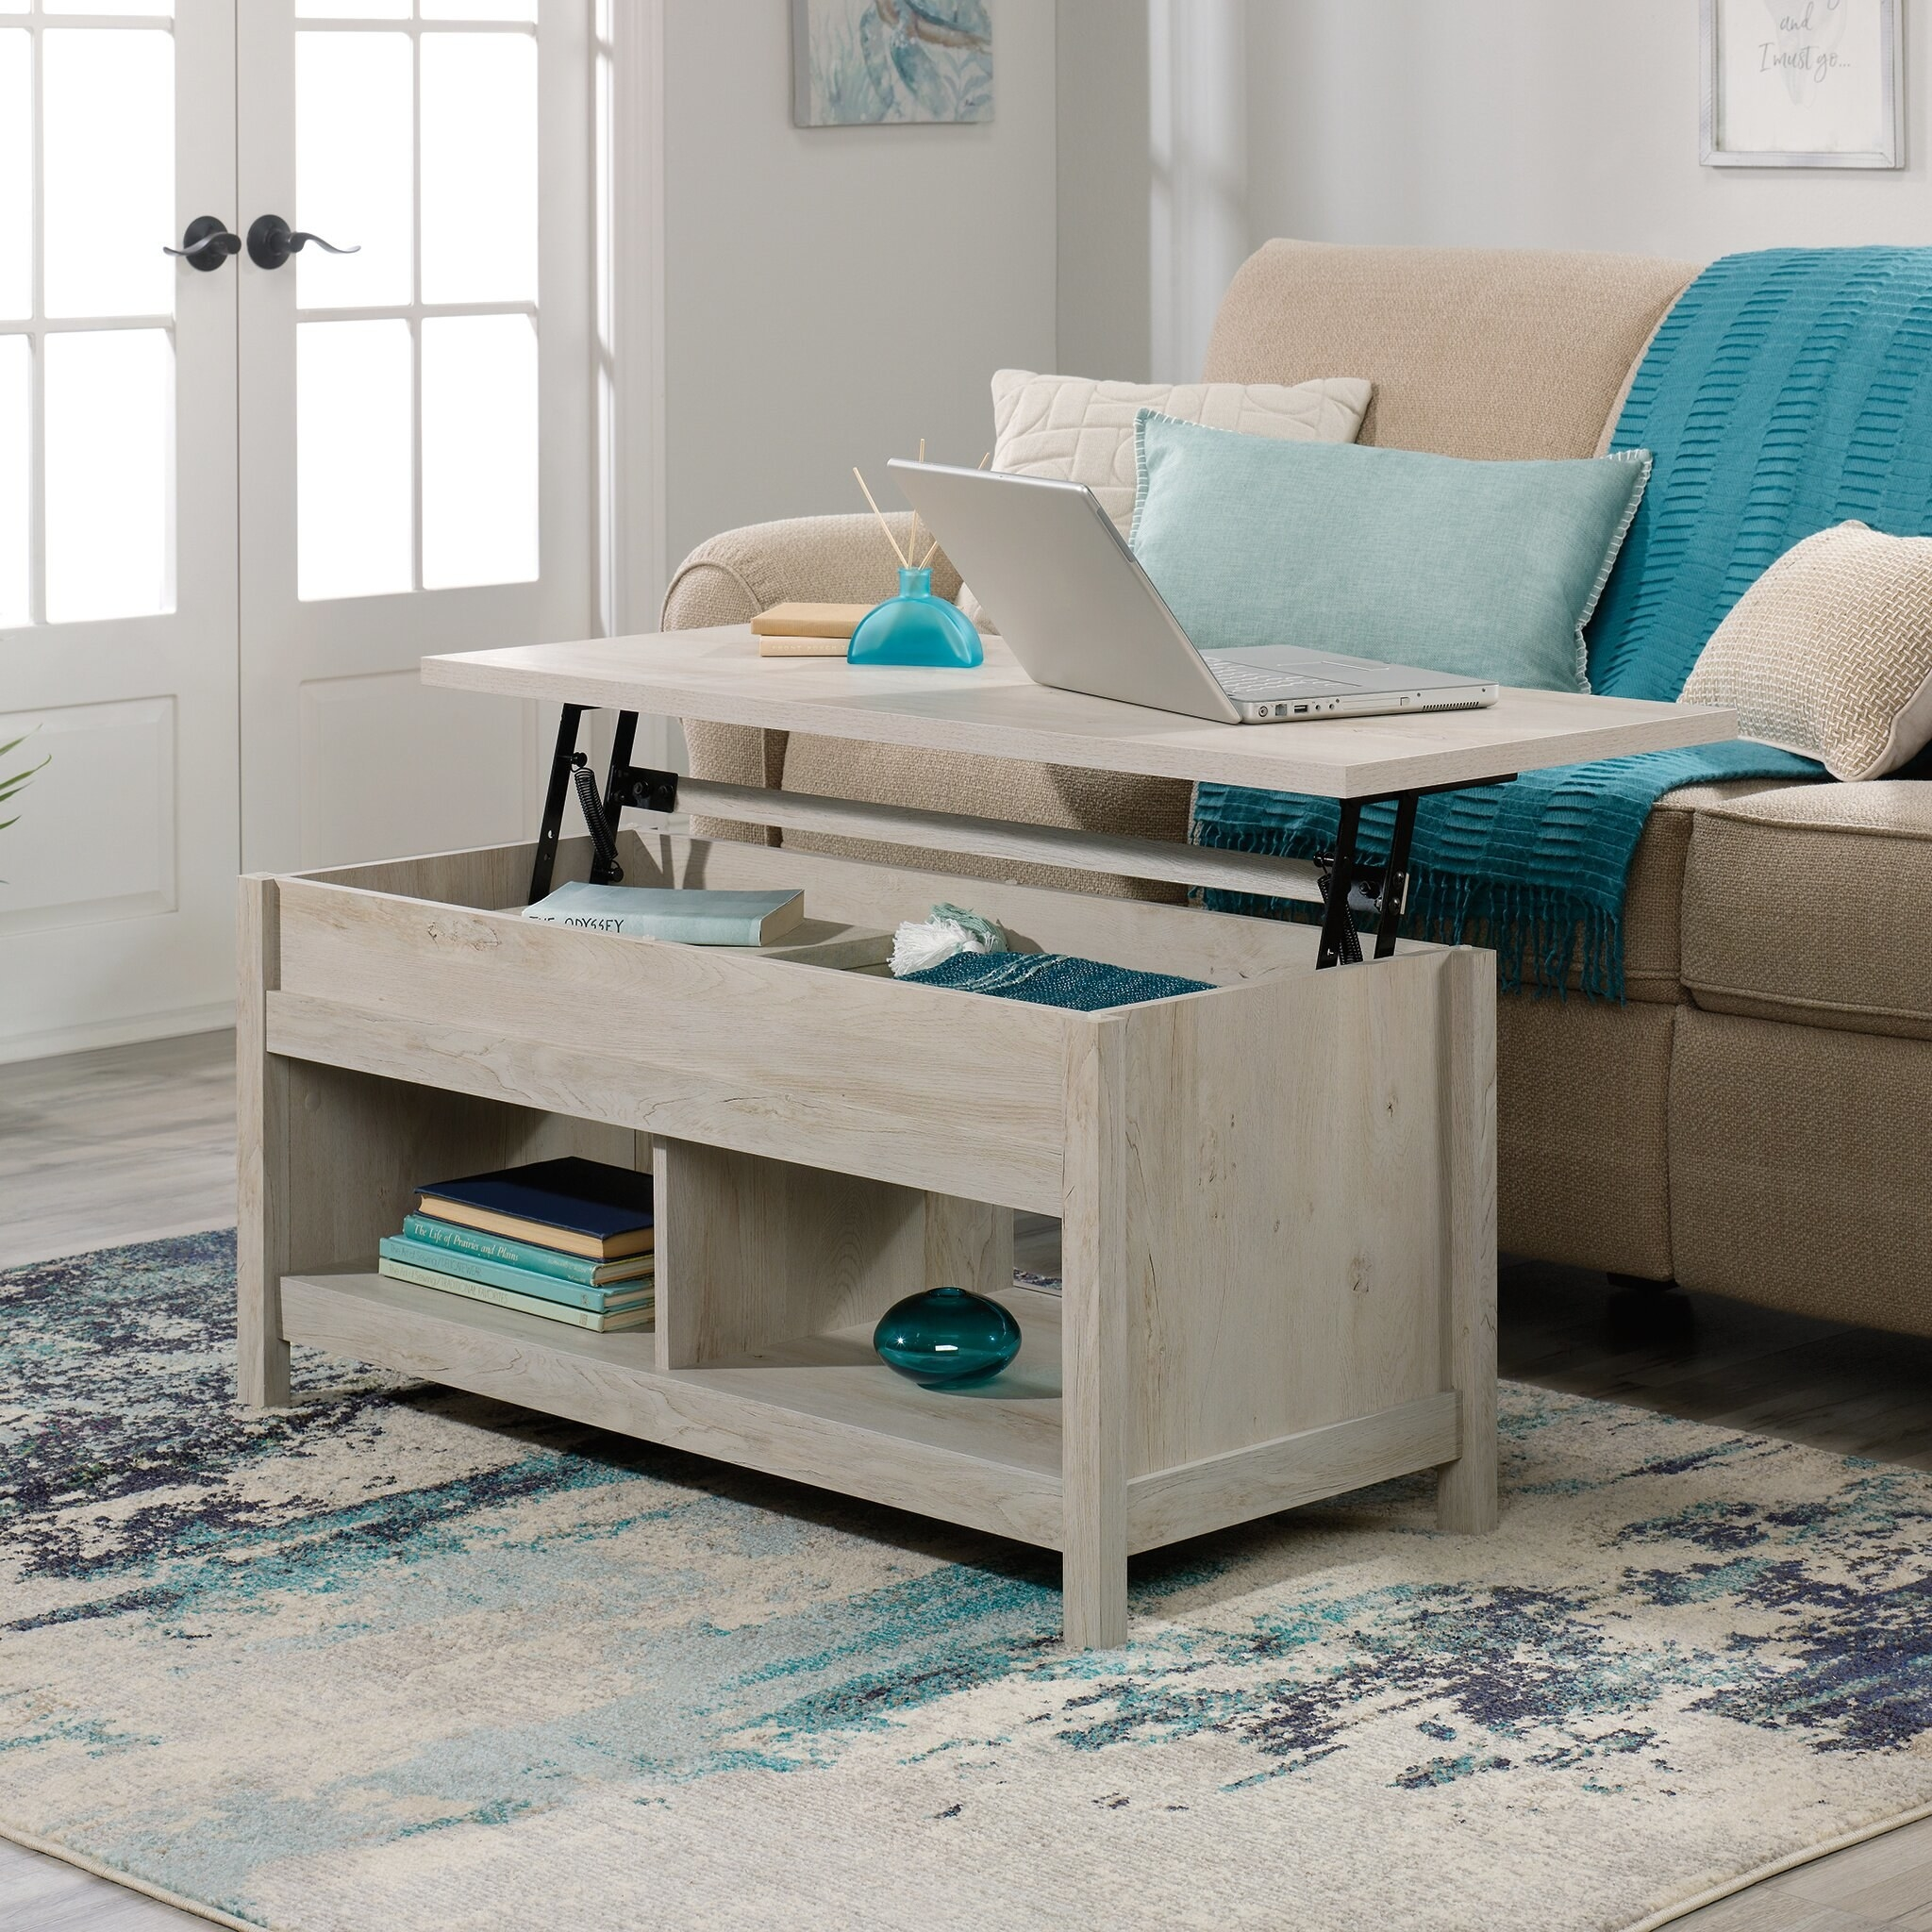 the chalked chestnut coffee table with the top lifted and elevated to show the storage capacity